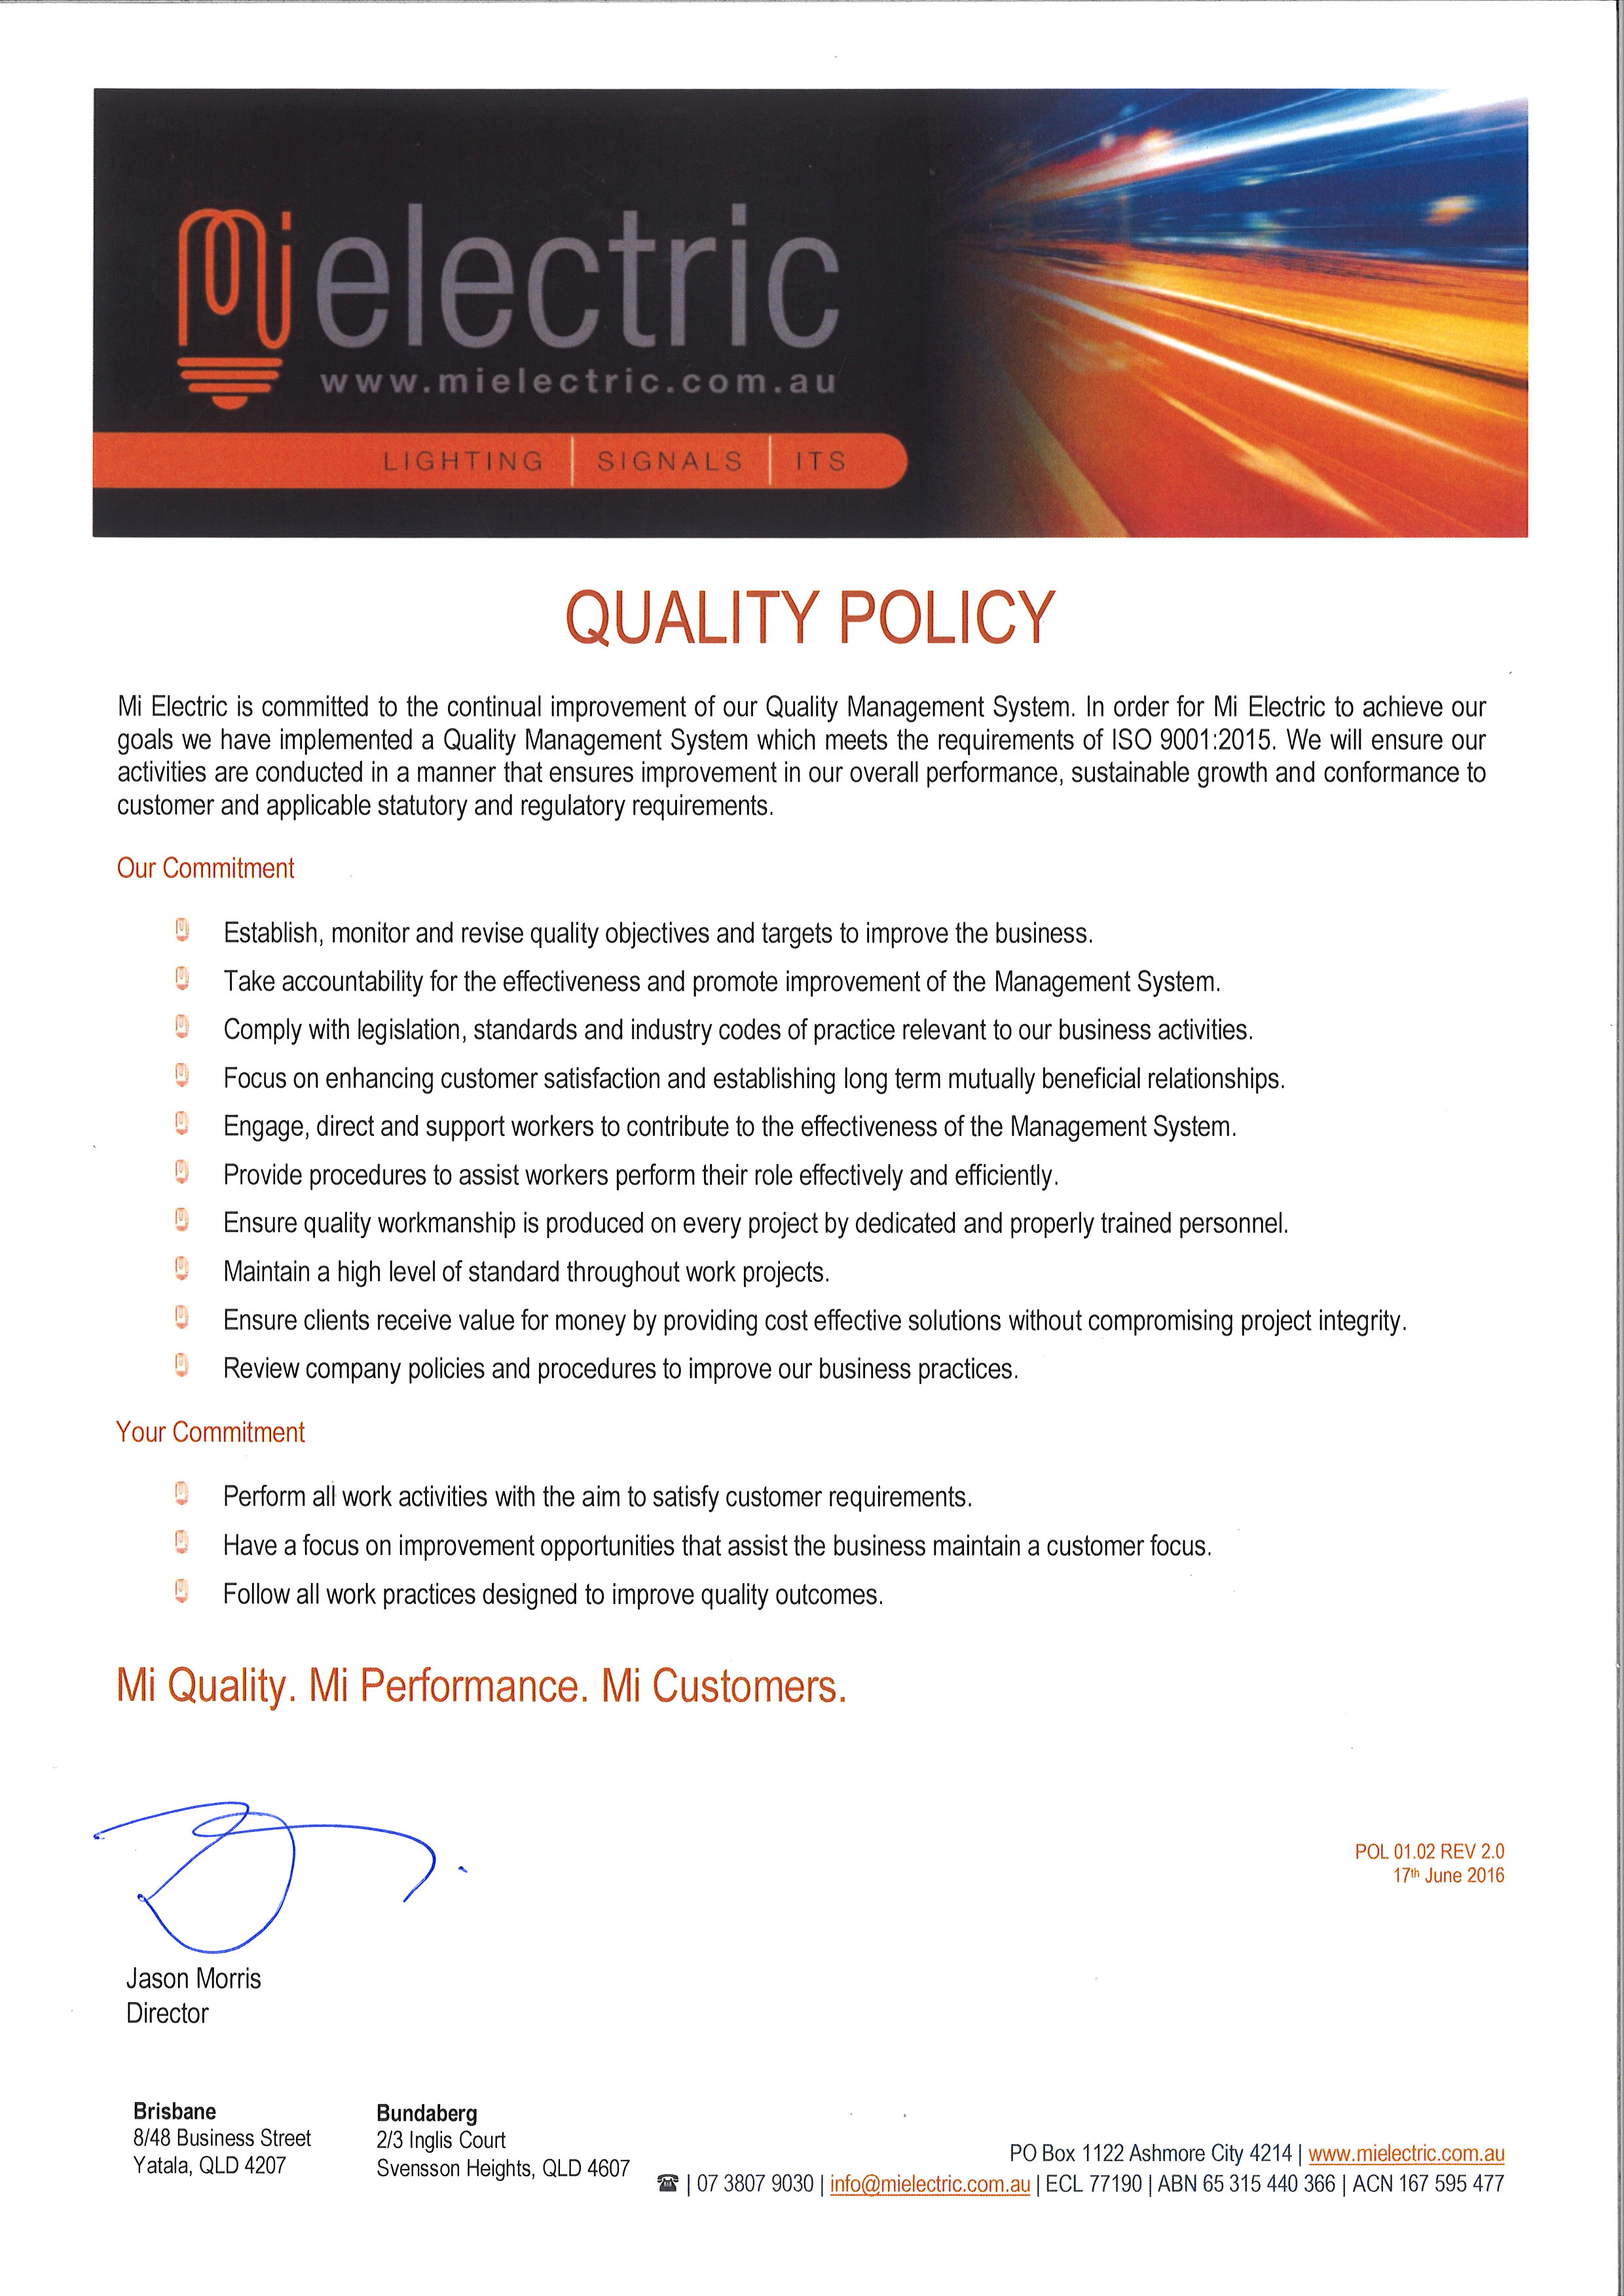 See our Quality Policy. Industrial   Commercial Electrical Contractors   Mi Electric